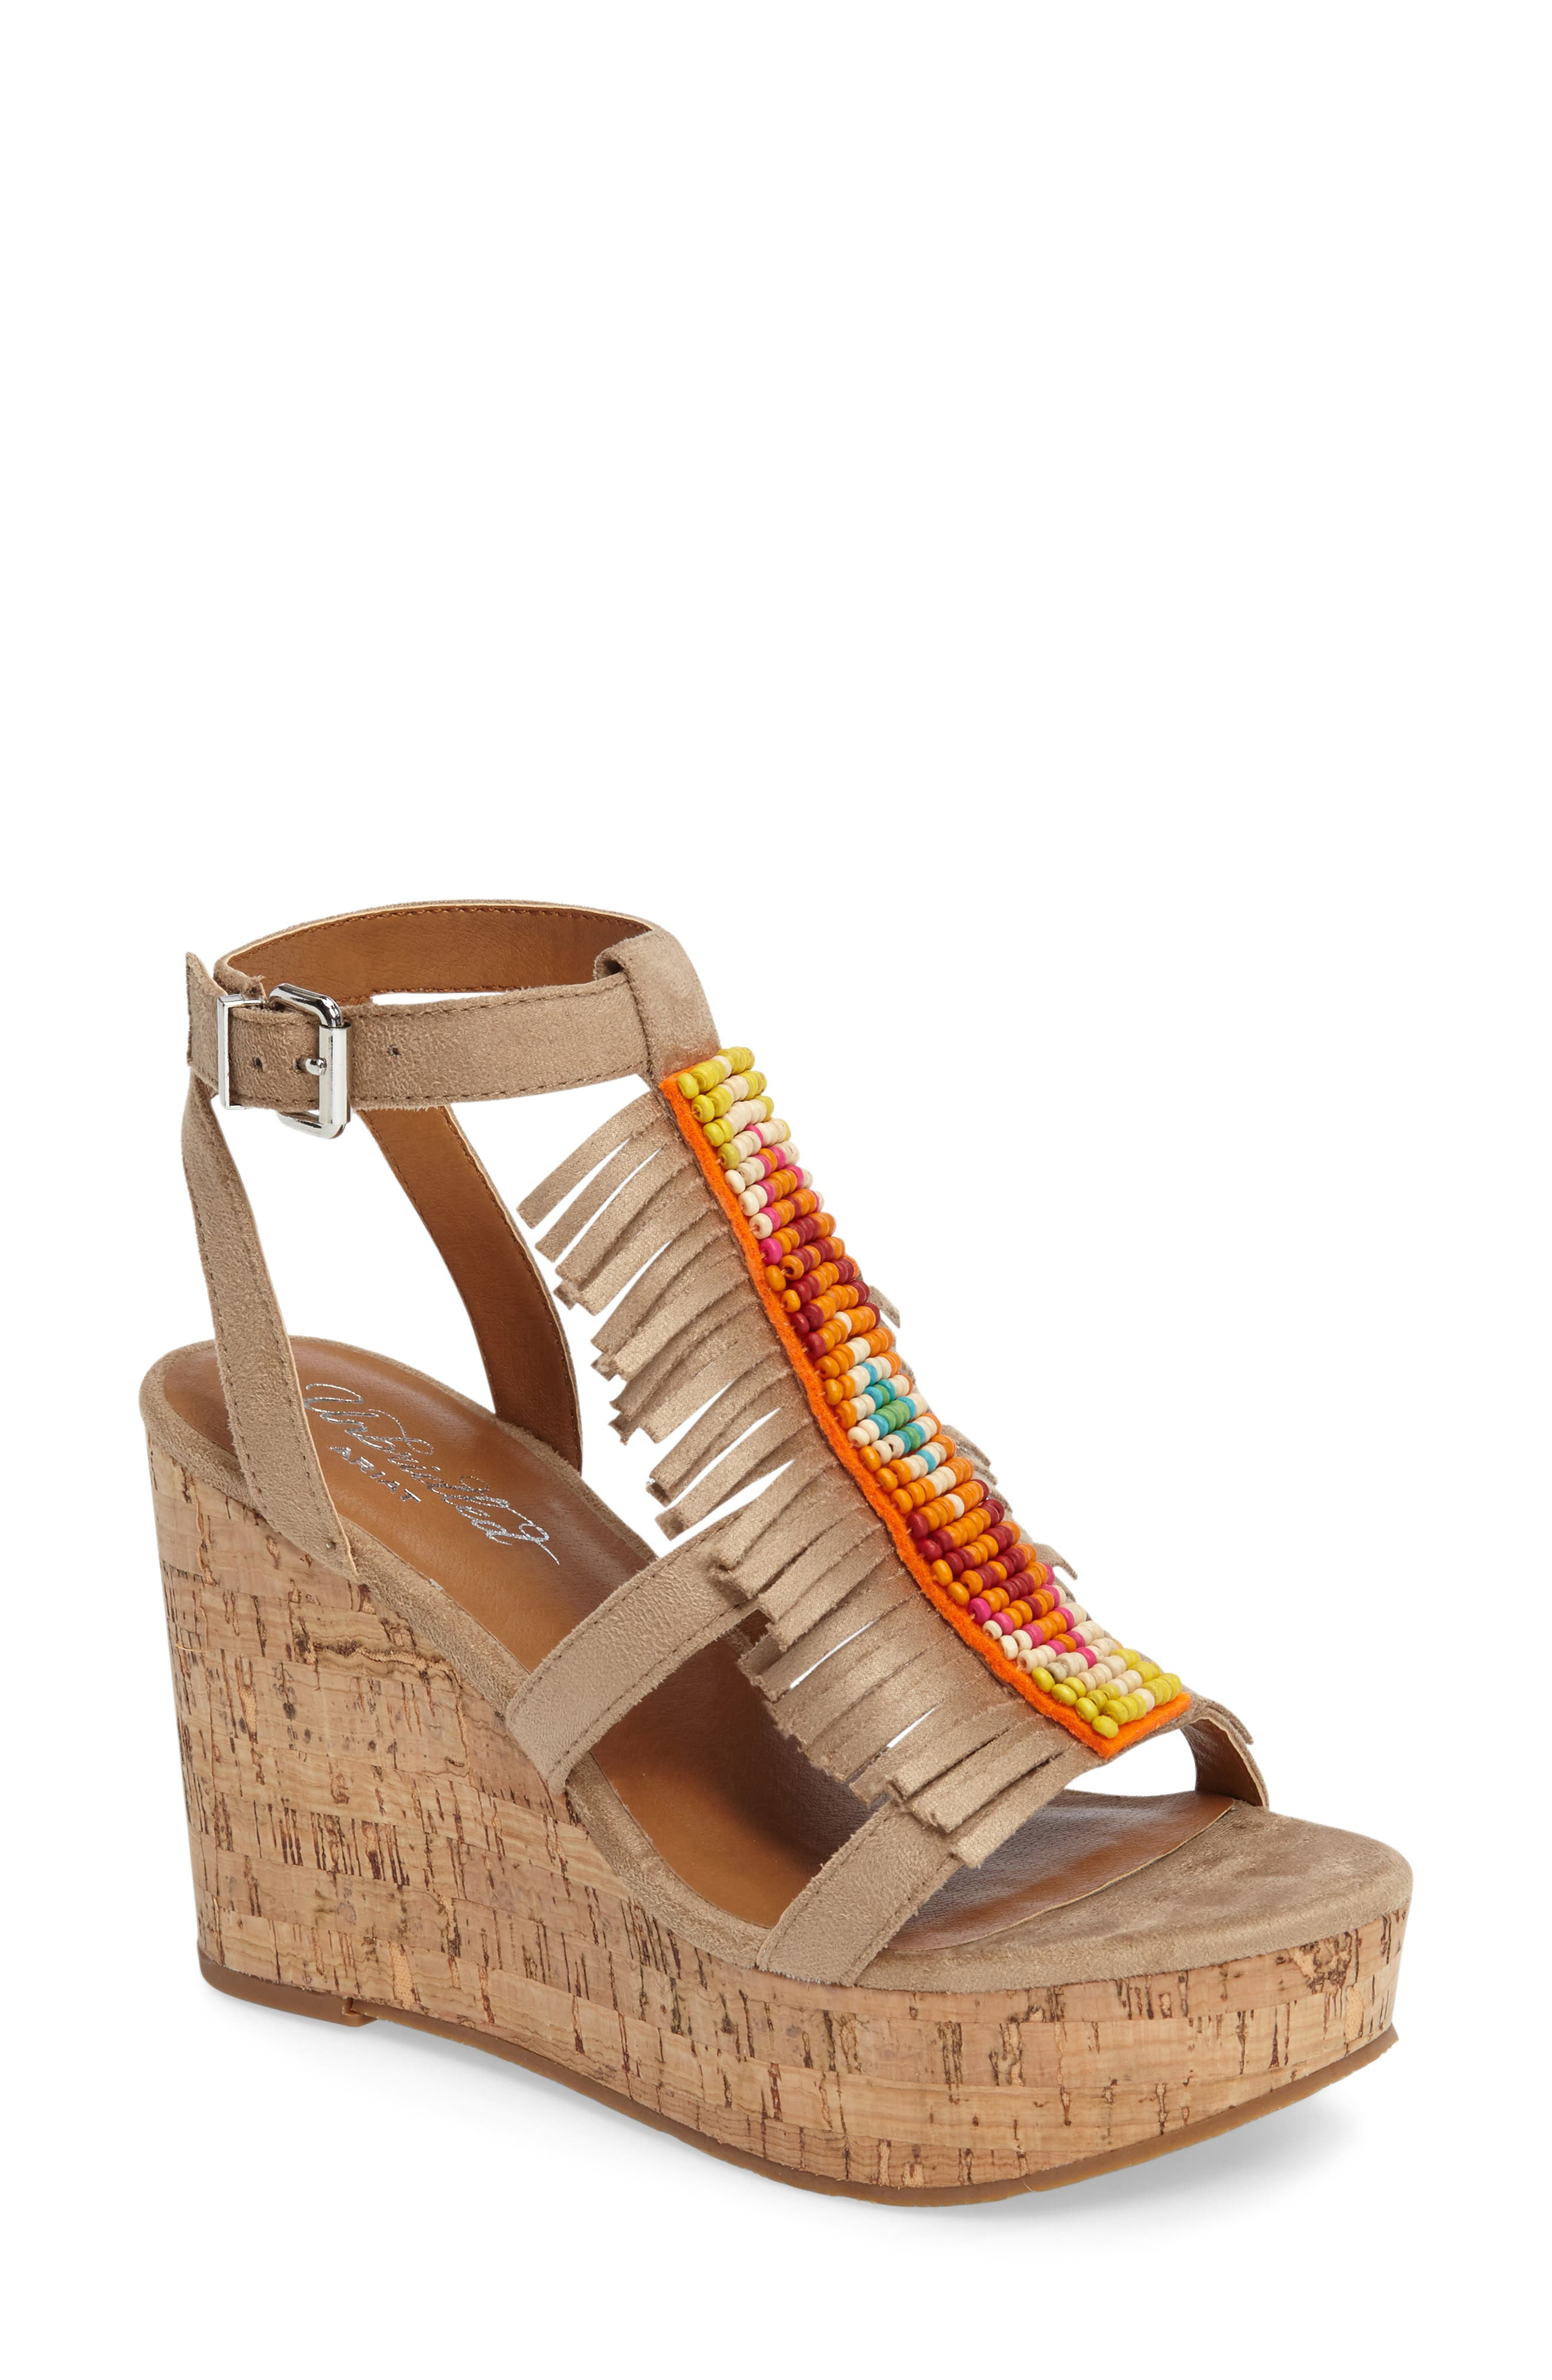 Unbridled Lolita Wedge Sandal,                             Main thumbnail 1, color,                             Sand Suede